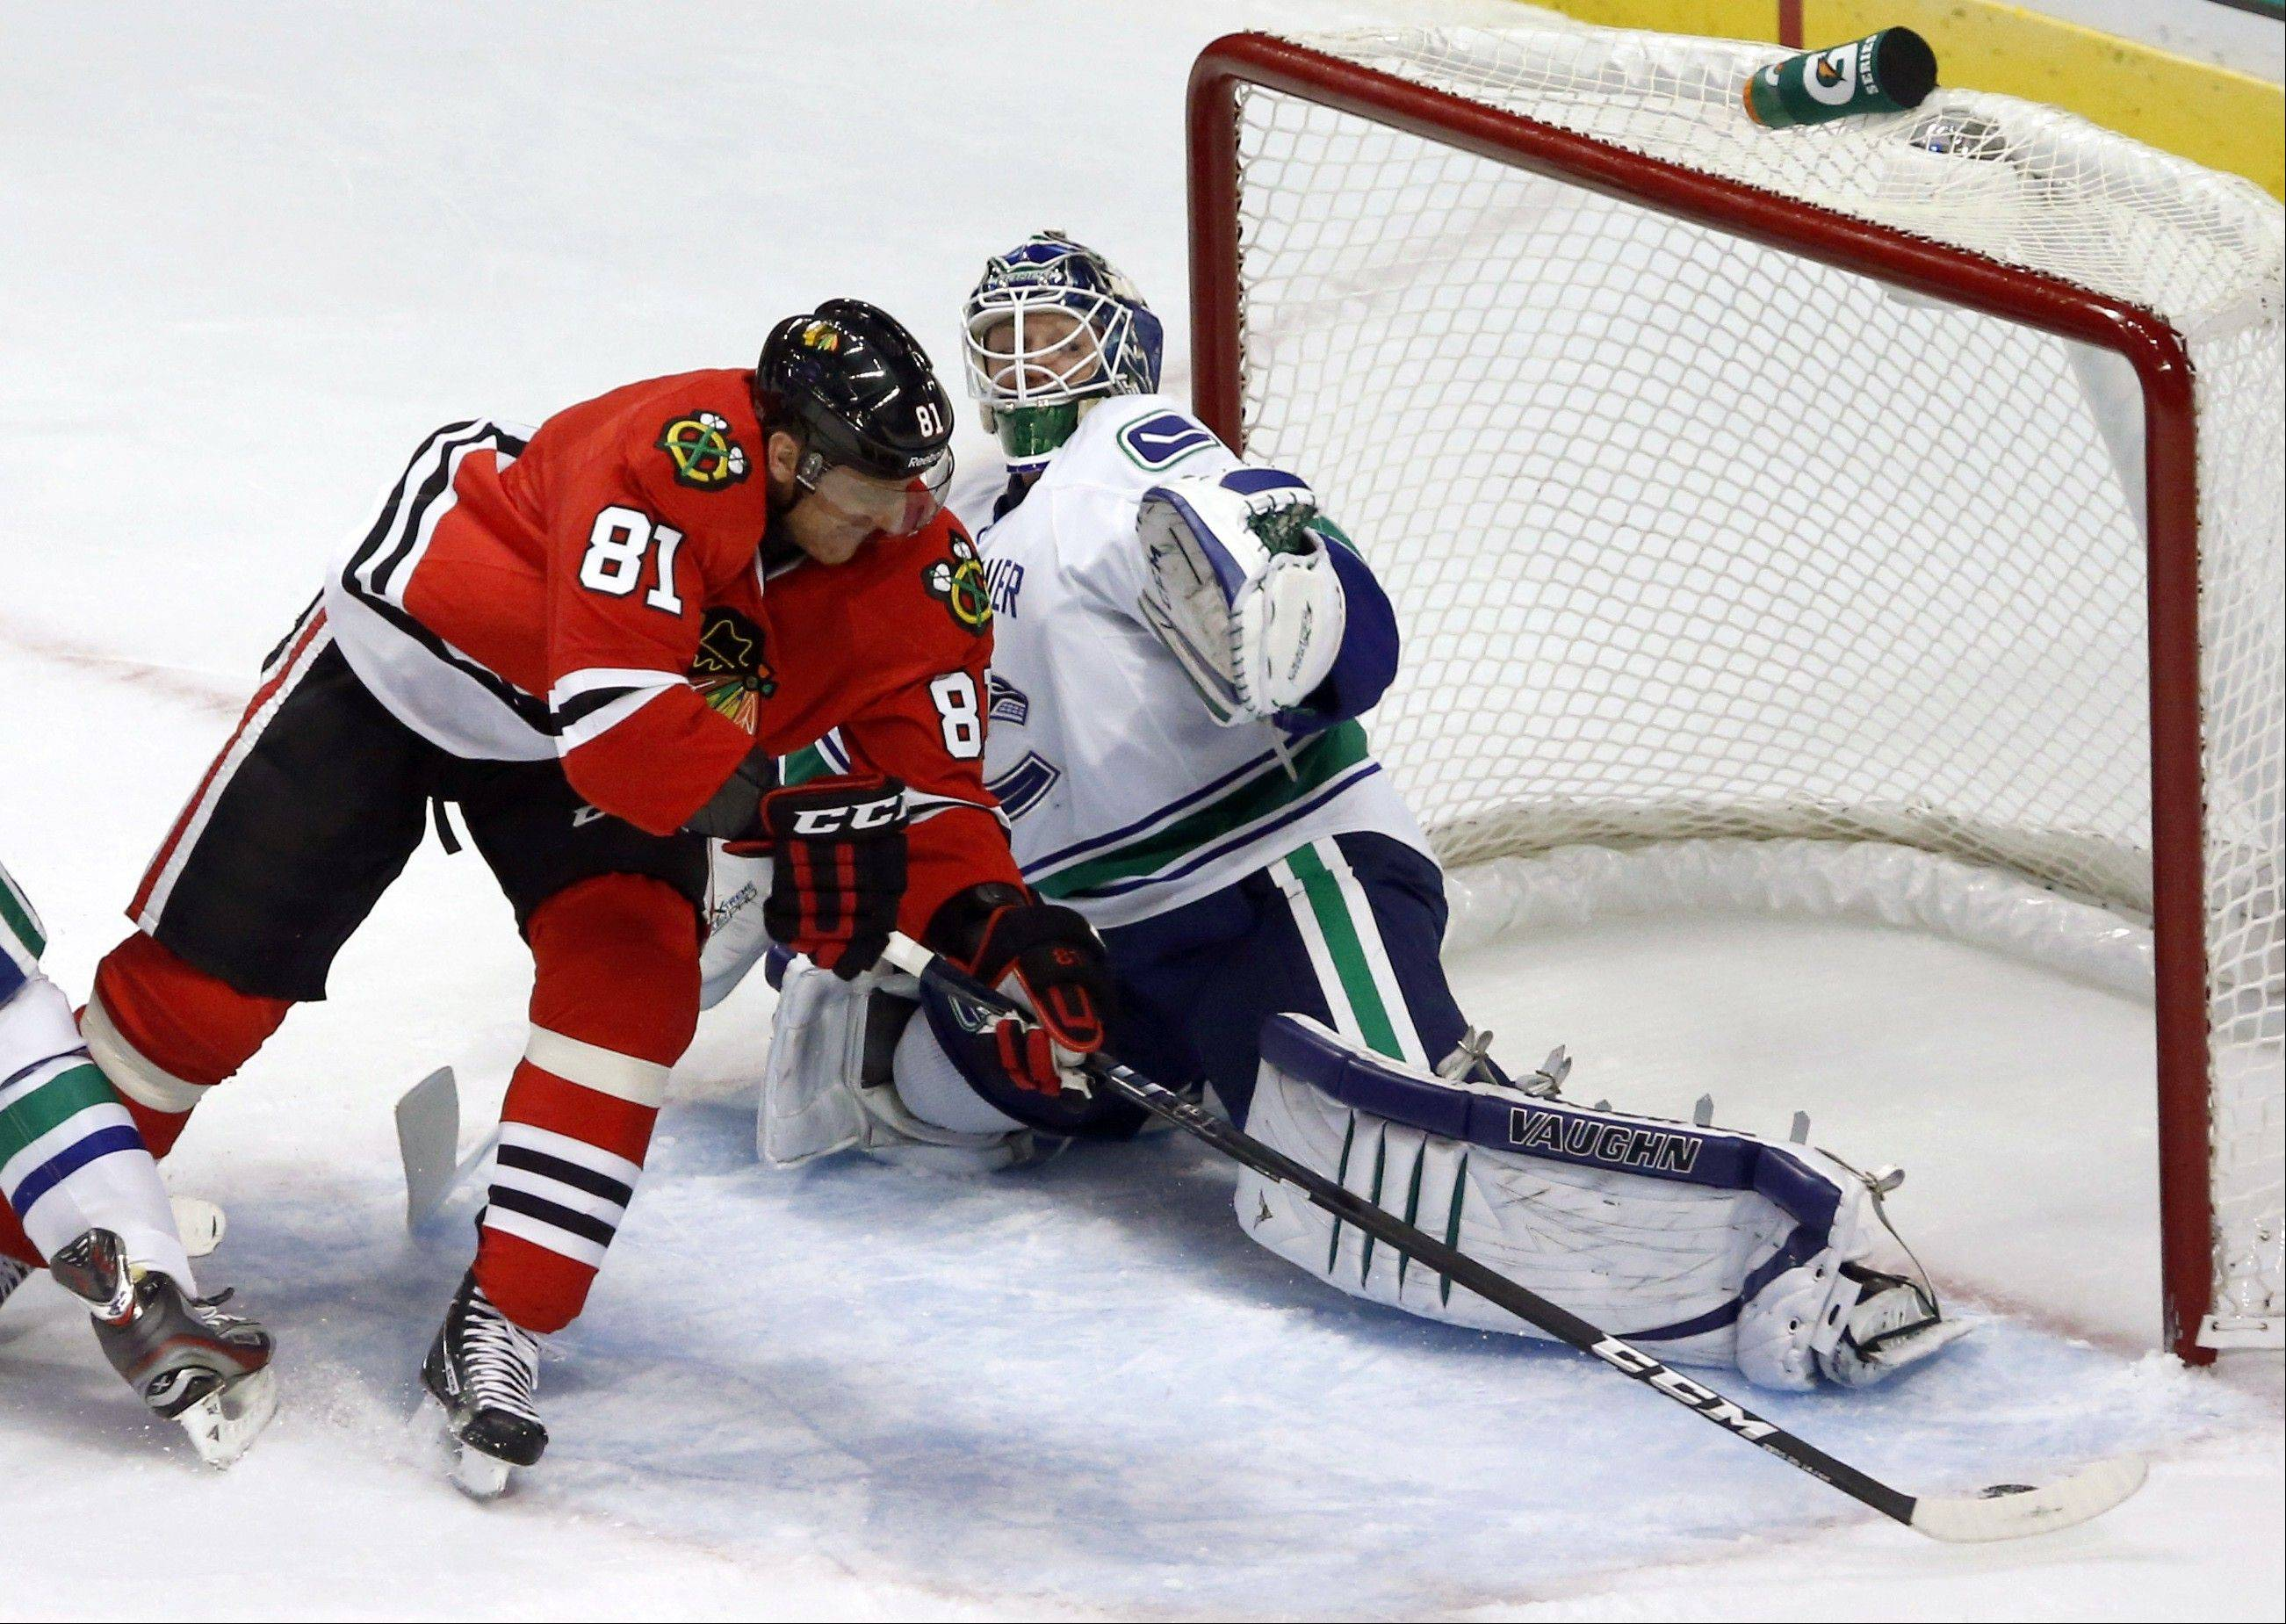 Blackhawks right wing Marian Hossa skates past Canucks goalie Cory Schneider to score his second goal in the second period Tuesday night at the United Center.